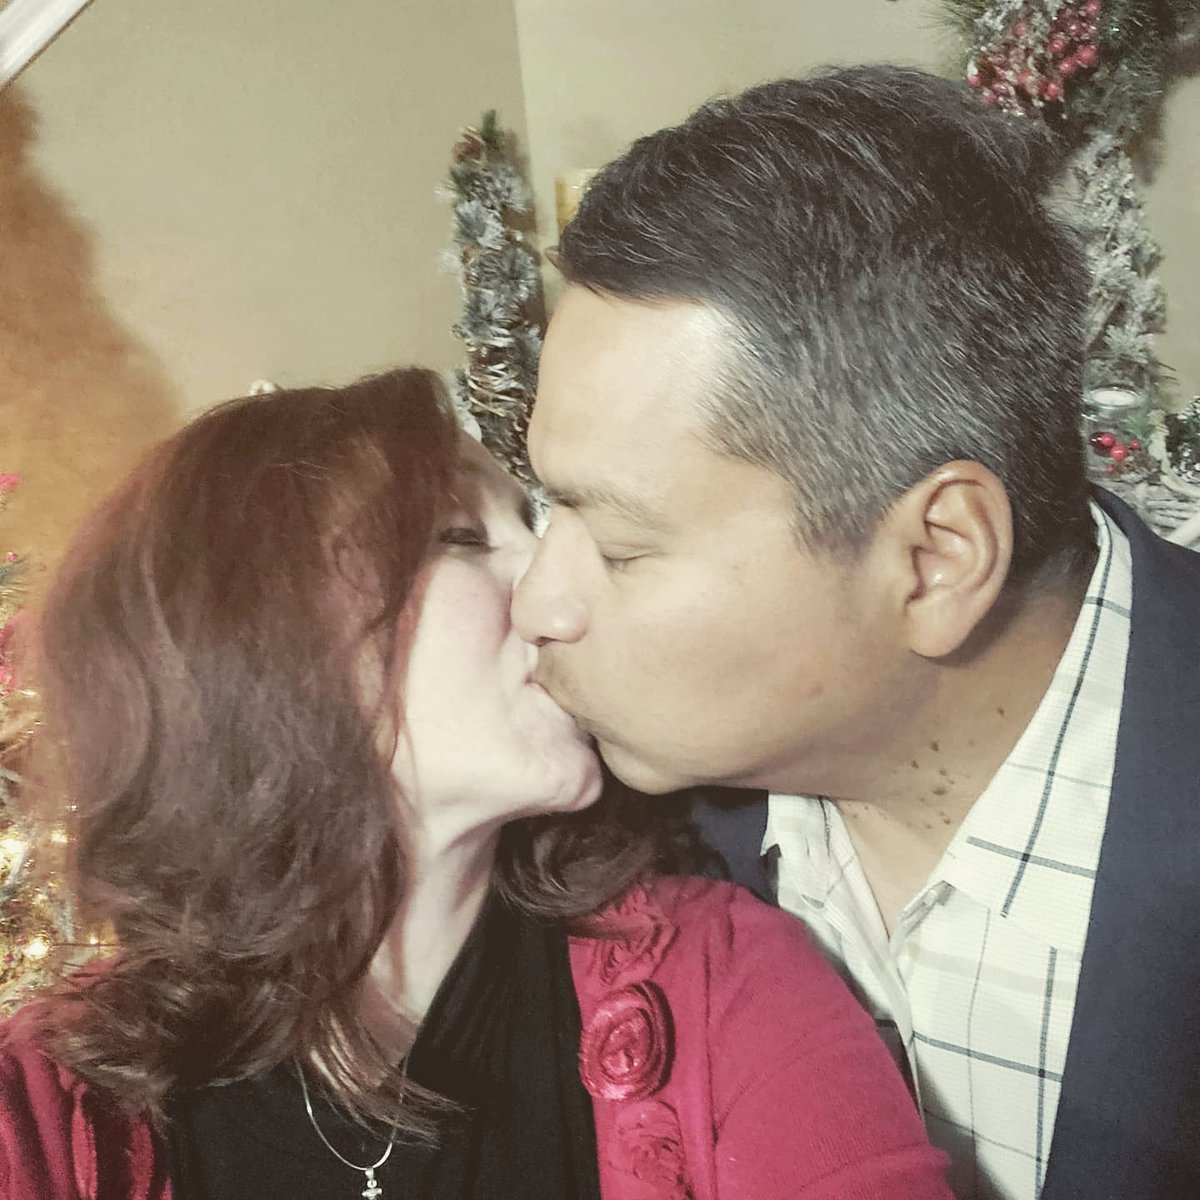 Merry Christmas Eve from Mr. Brave and me.  #WritingCommunity #UnderTheMistletoe #ChristmasEve